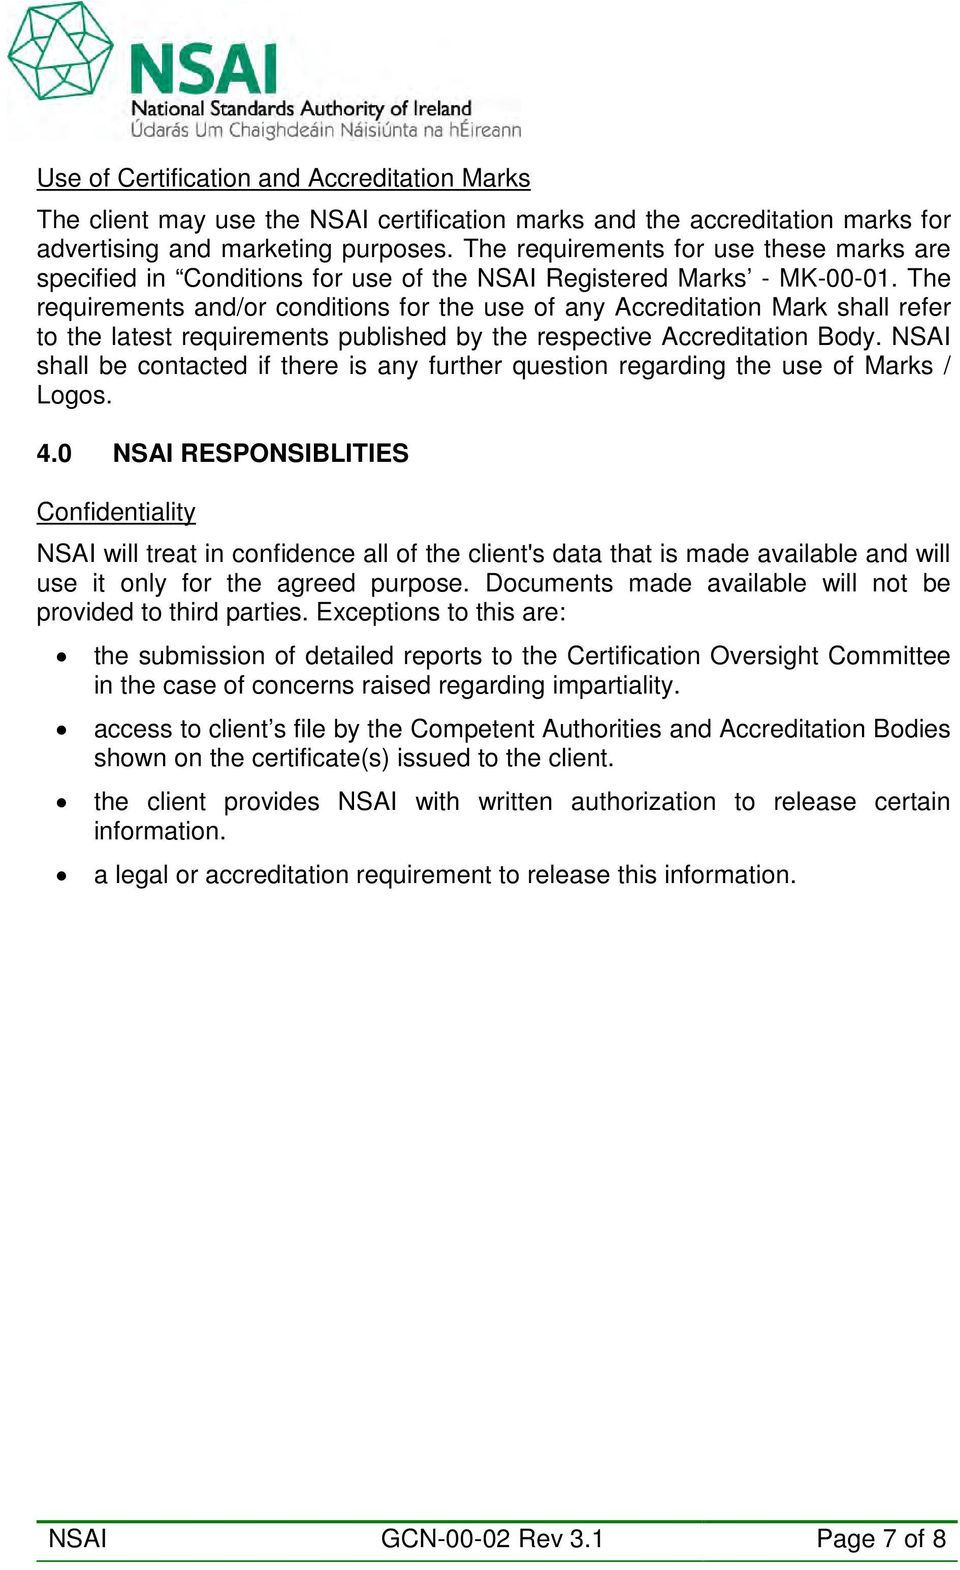 The requirements and/or conditions for the use of any Accreditation Mark shall refer to the latest requirements published by the respective Accreditation Body.